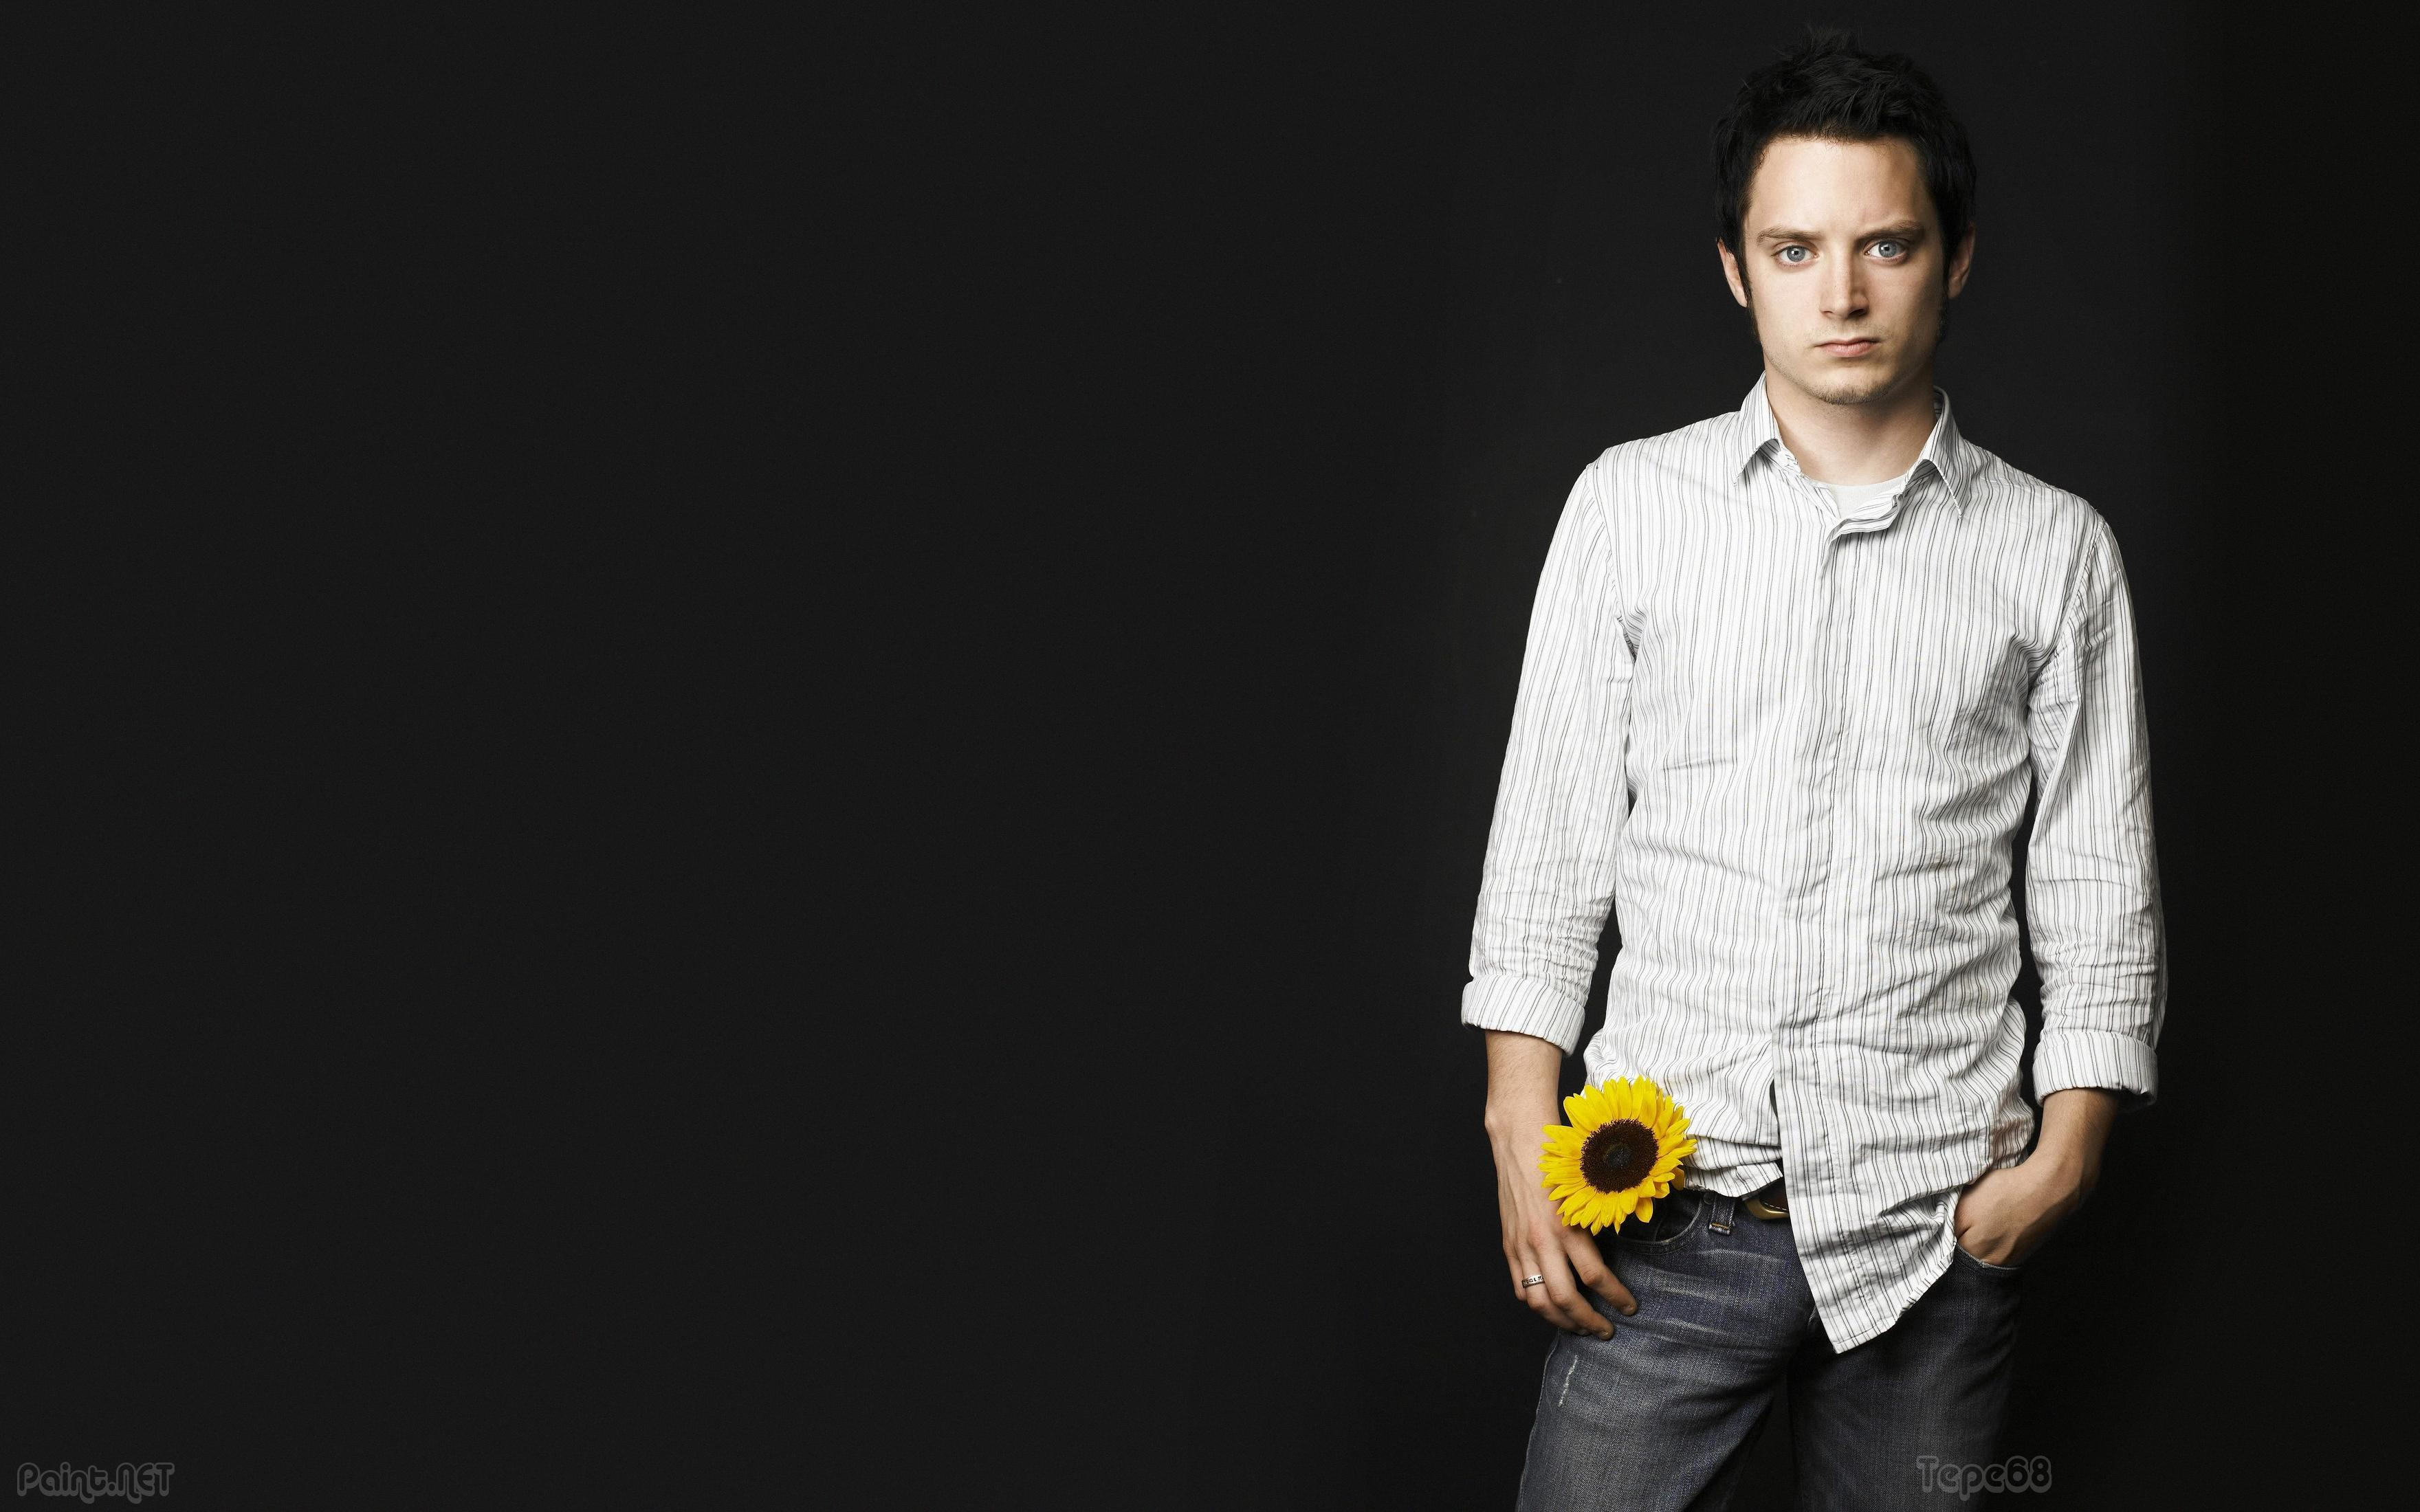 Elijah Wood Wallpapers High Resolution and Quality Download